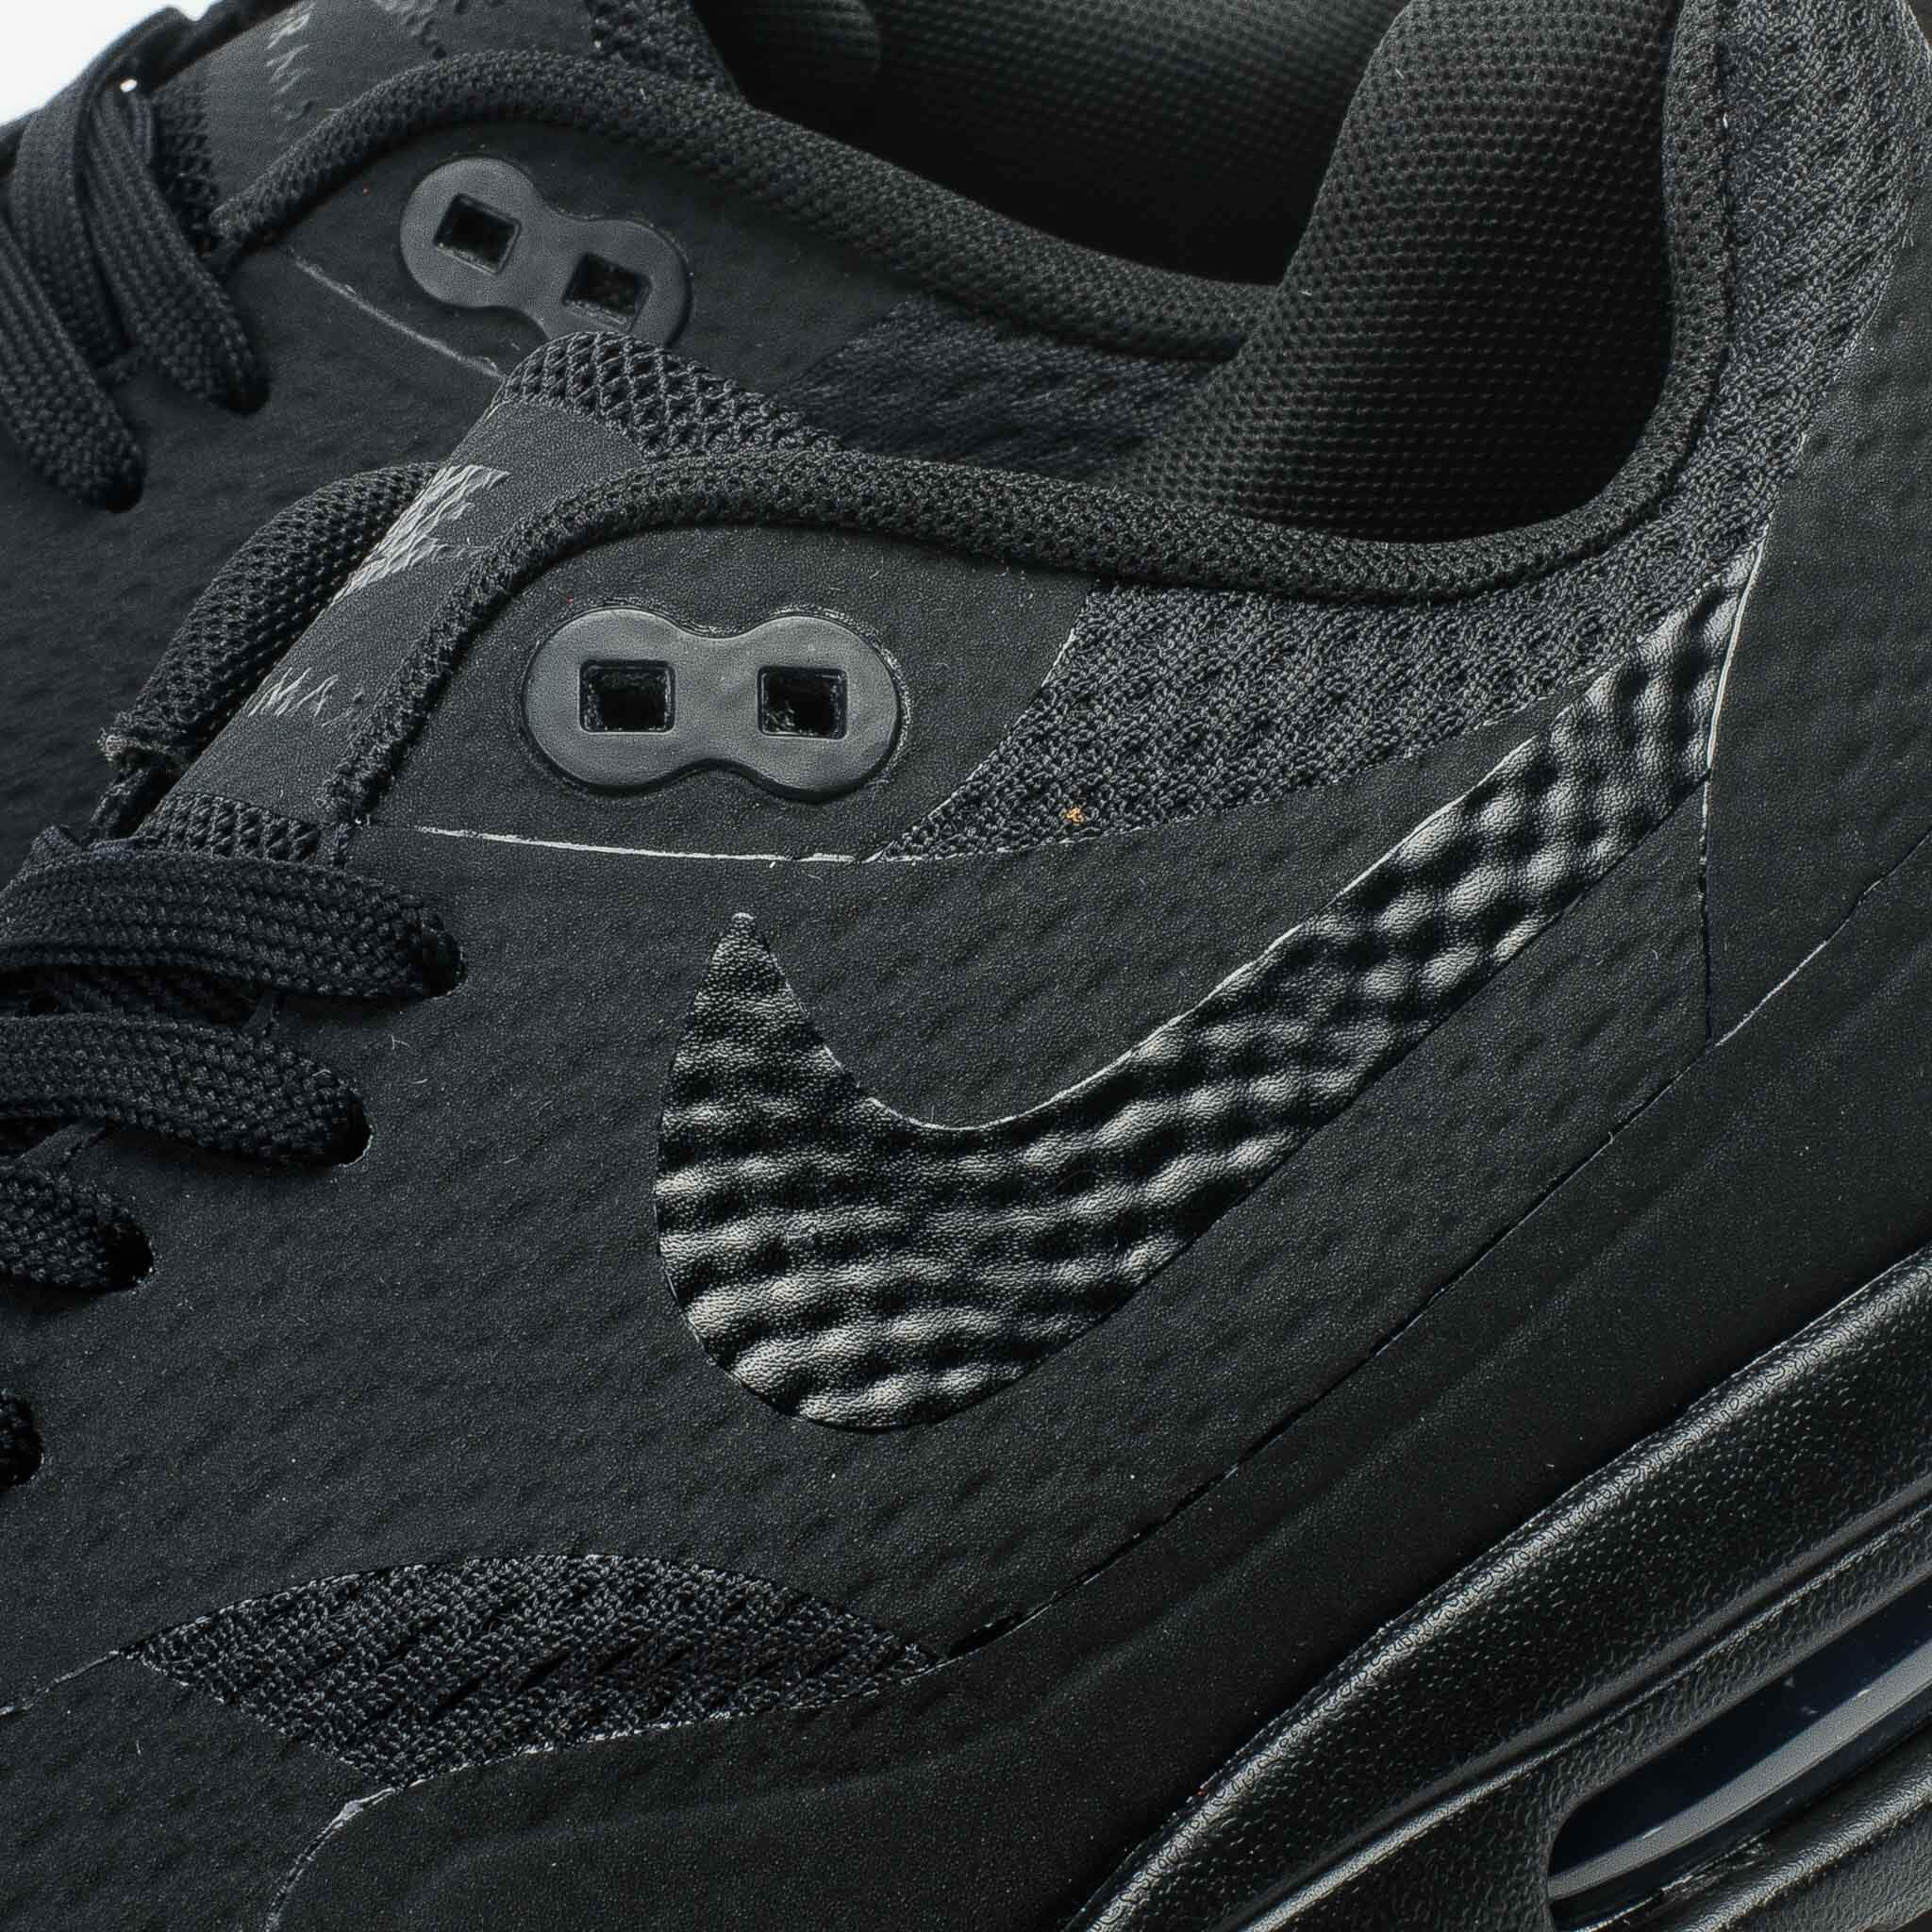 Golpe fuerte pasaporte Delgado  Nike Air Max 1 Ultra Essential Triple Black | Where To Buy | 819476-001 |  The Sole Supplier